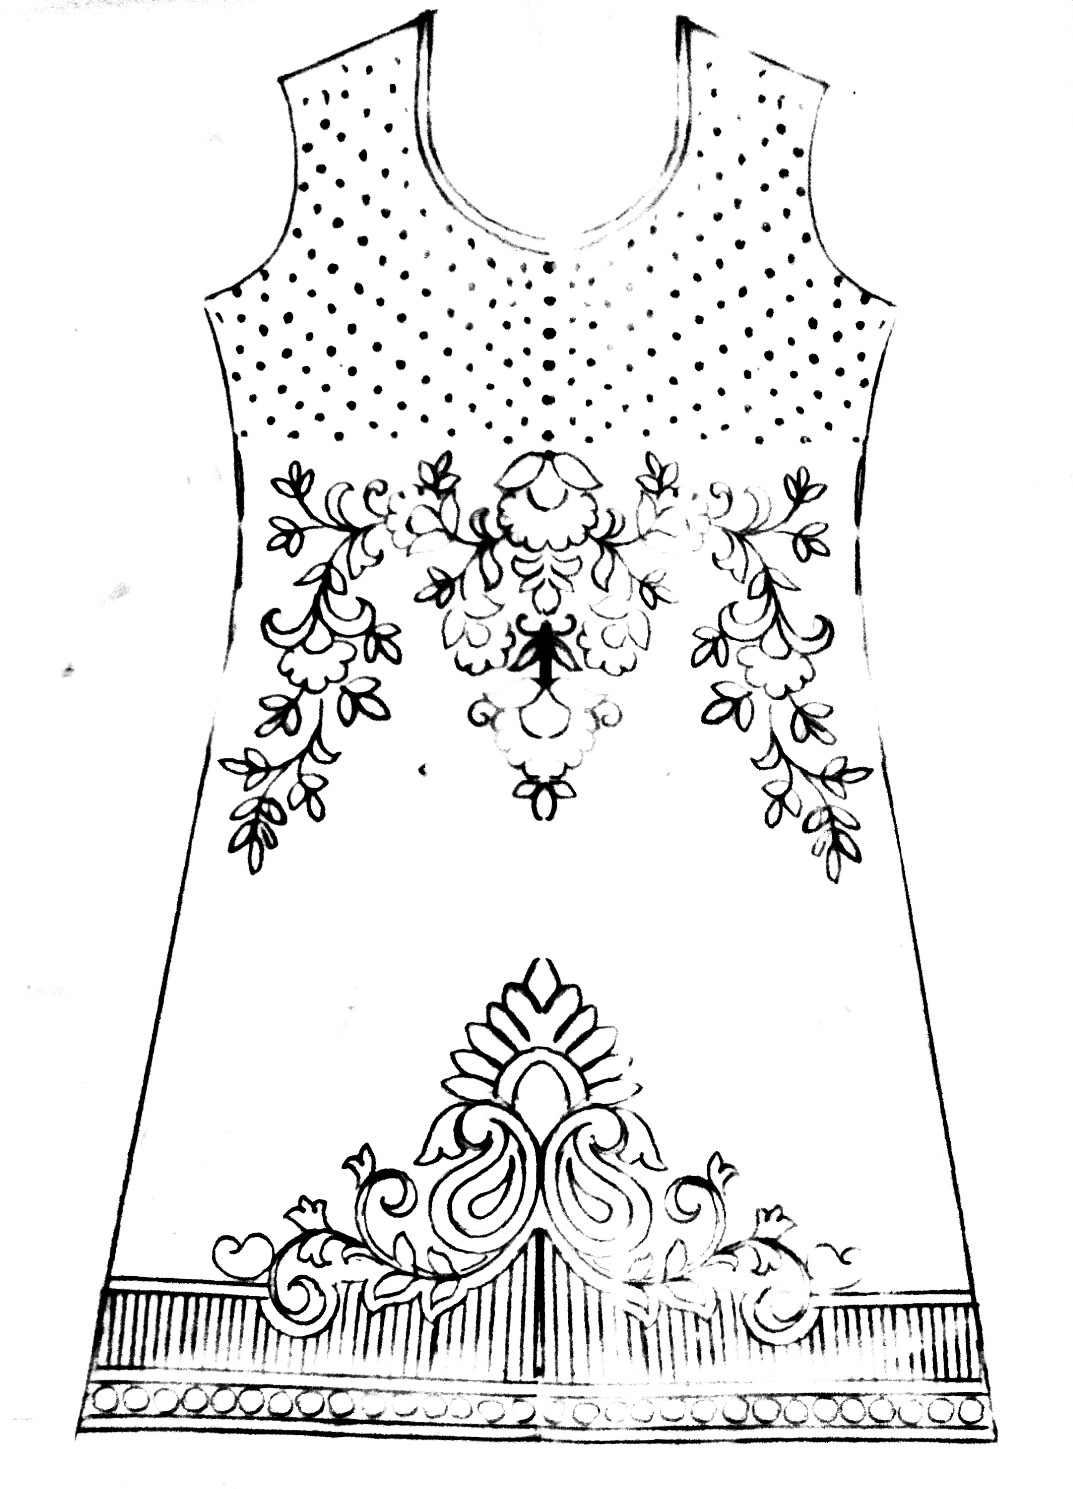 Free download hand emroidery kurti design patterns sketch on paper. Dress design drawing easy for embroidery.